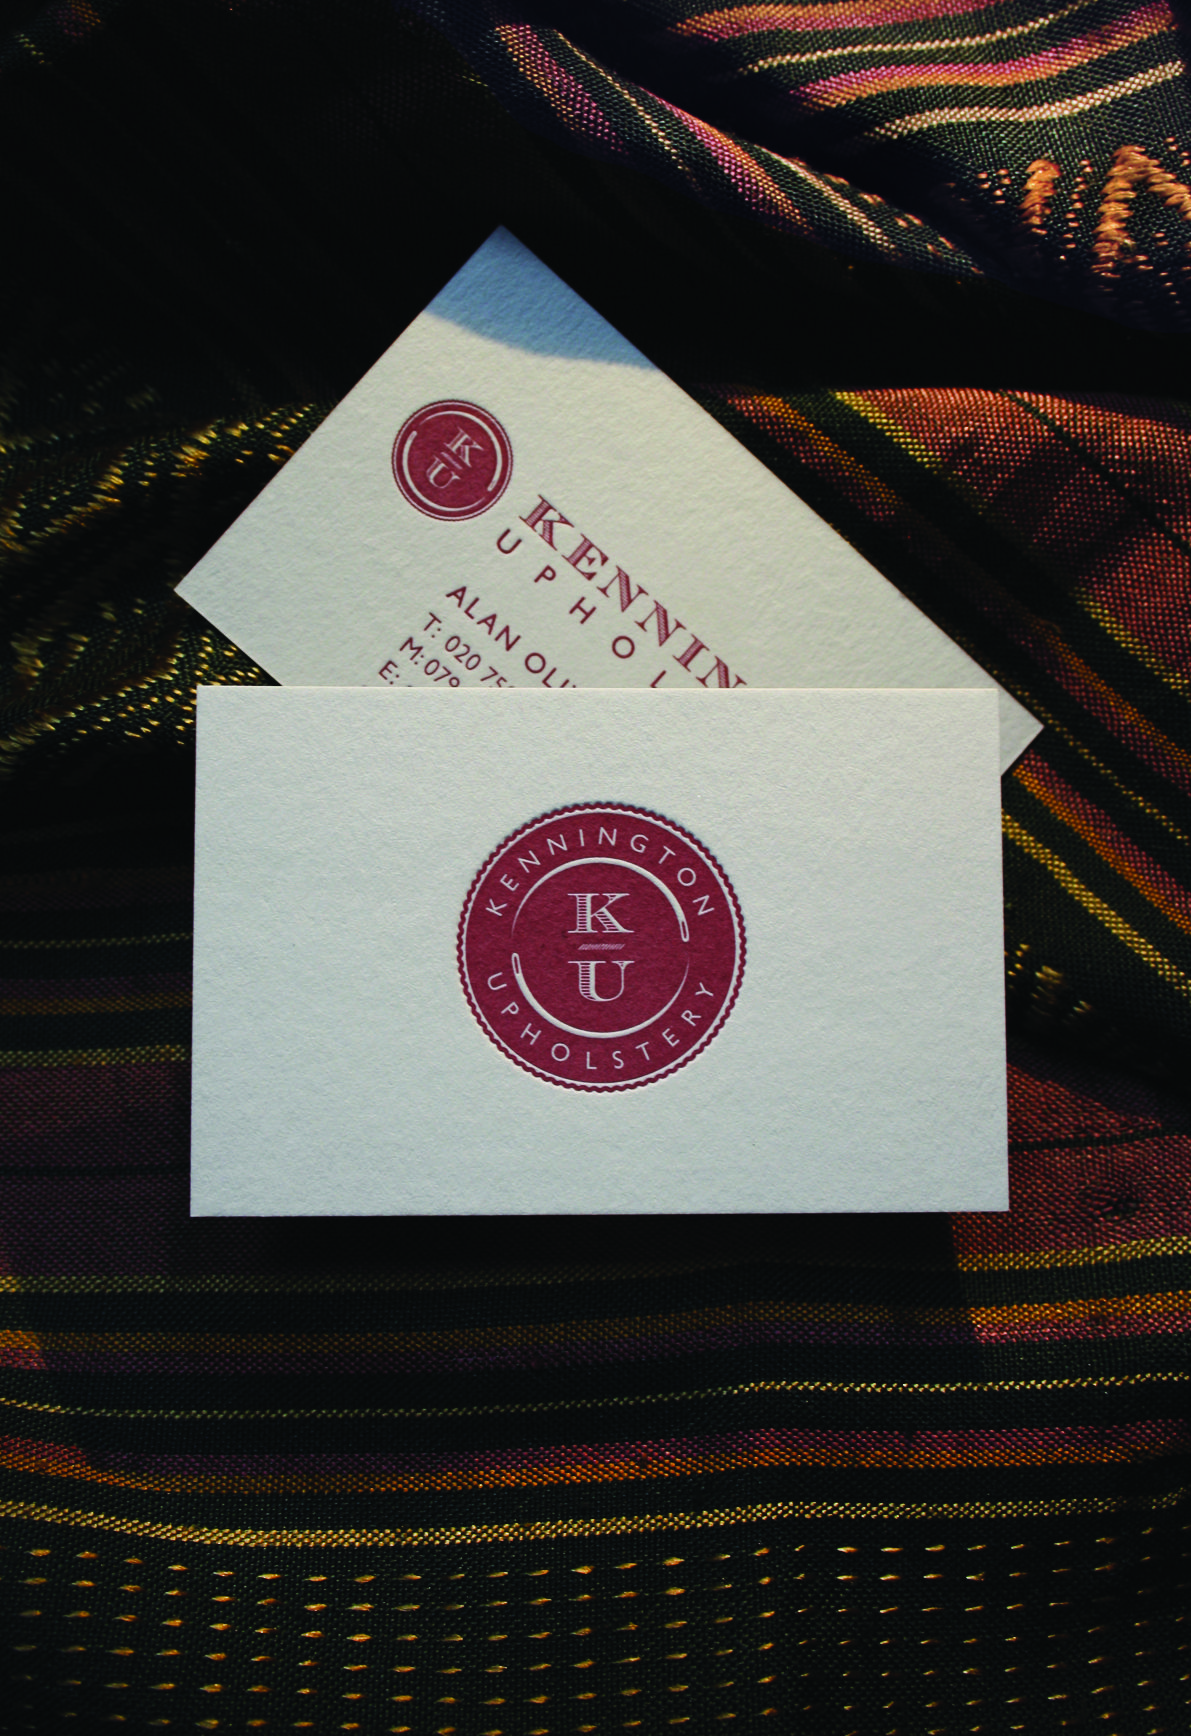 kennington upholstery logo design and letterpress business cards ...